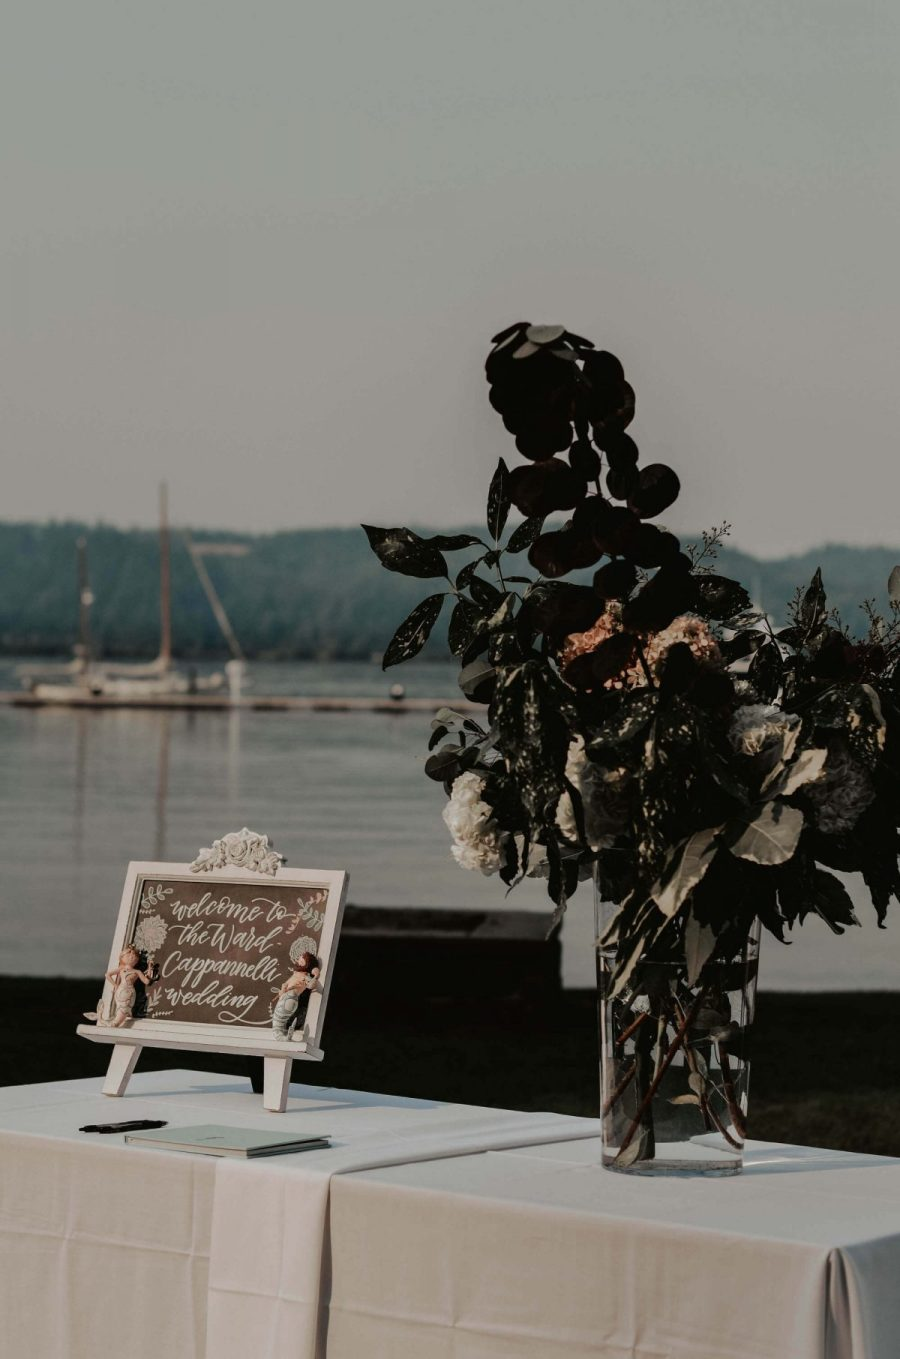 alderbrook-resort, alderbrook-resort-wedding, seattle-wedding-photographer, wedding-photography, alderbrook-resort-wedding-photography, alderbrook-resort-wedding-photos, washington-wedding-photography, alderbrook-resort-wedding-venue,